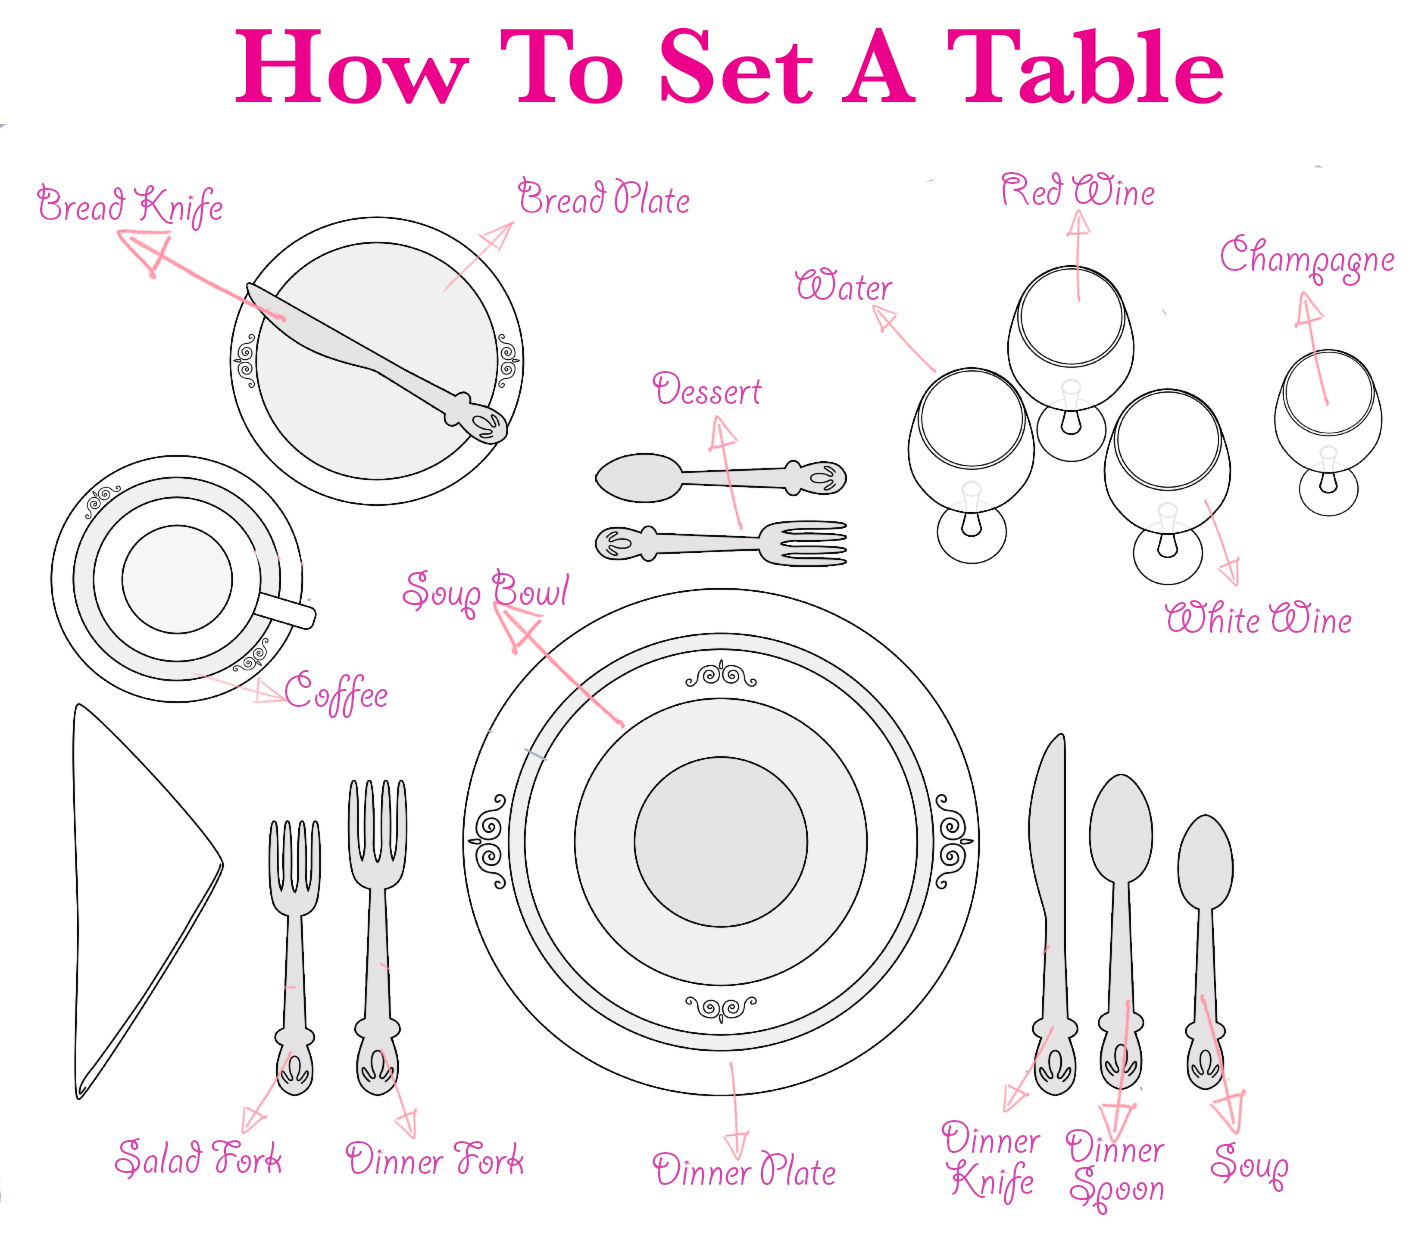 10 Gorgeous Table Setting Ideas How To Set Your